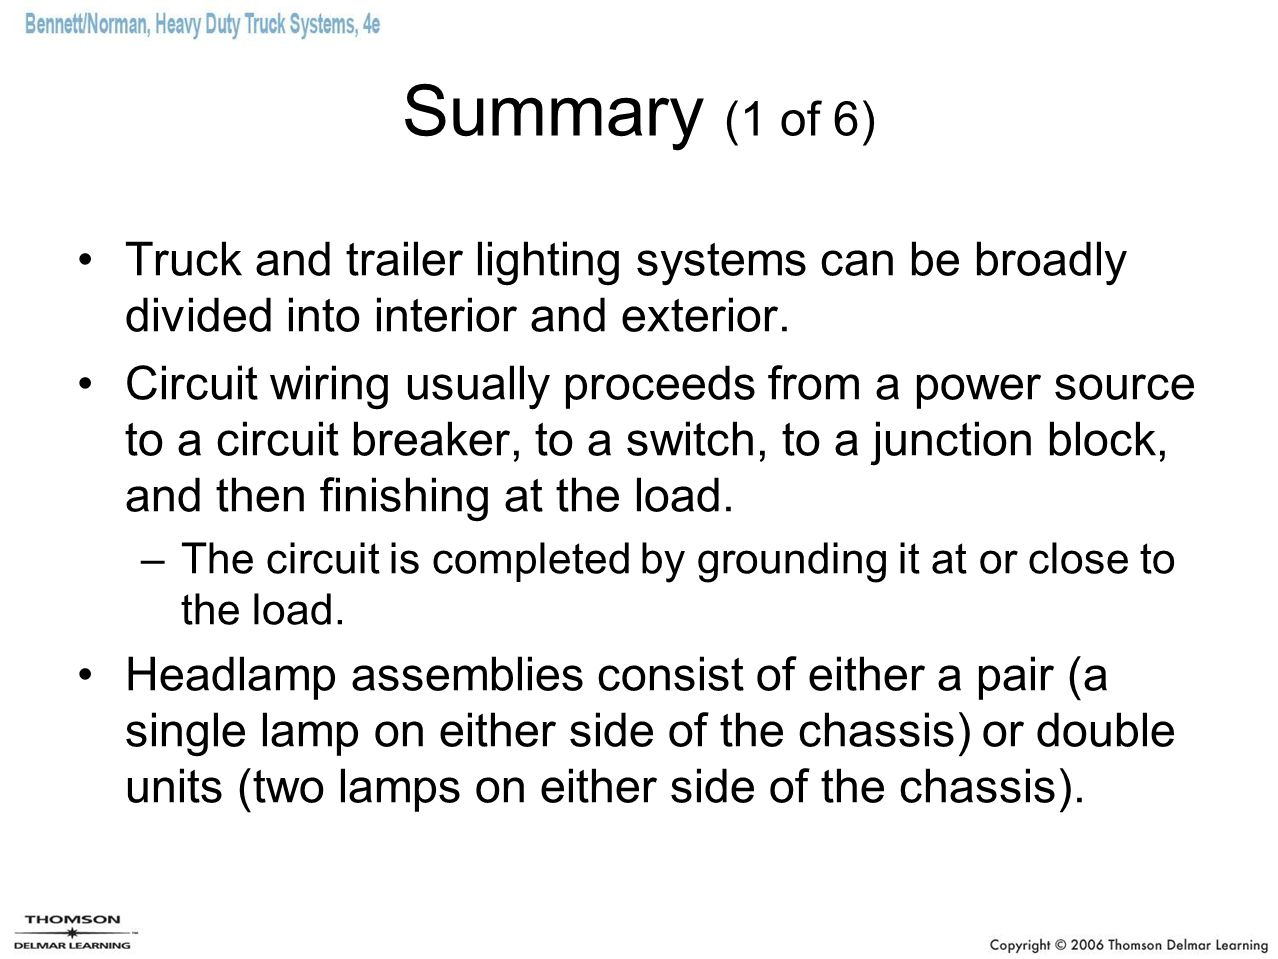 Summary (1 of 6) Truck and trailer lighting systems can be broadly divided into interior and exterior. Circuit wiring usually proceeds from a power so